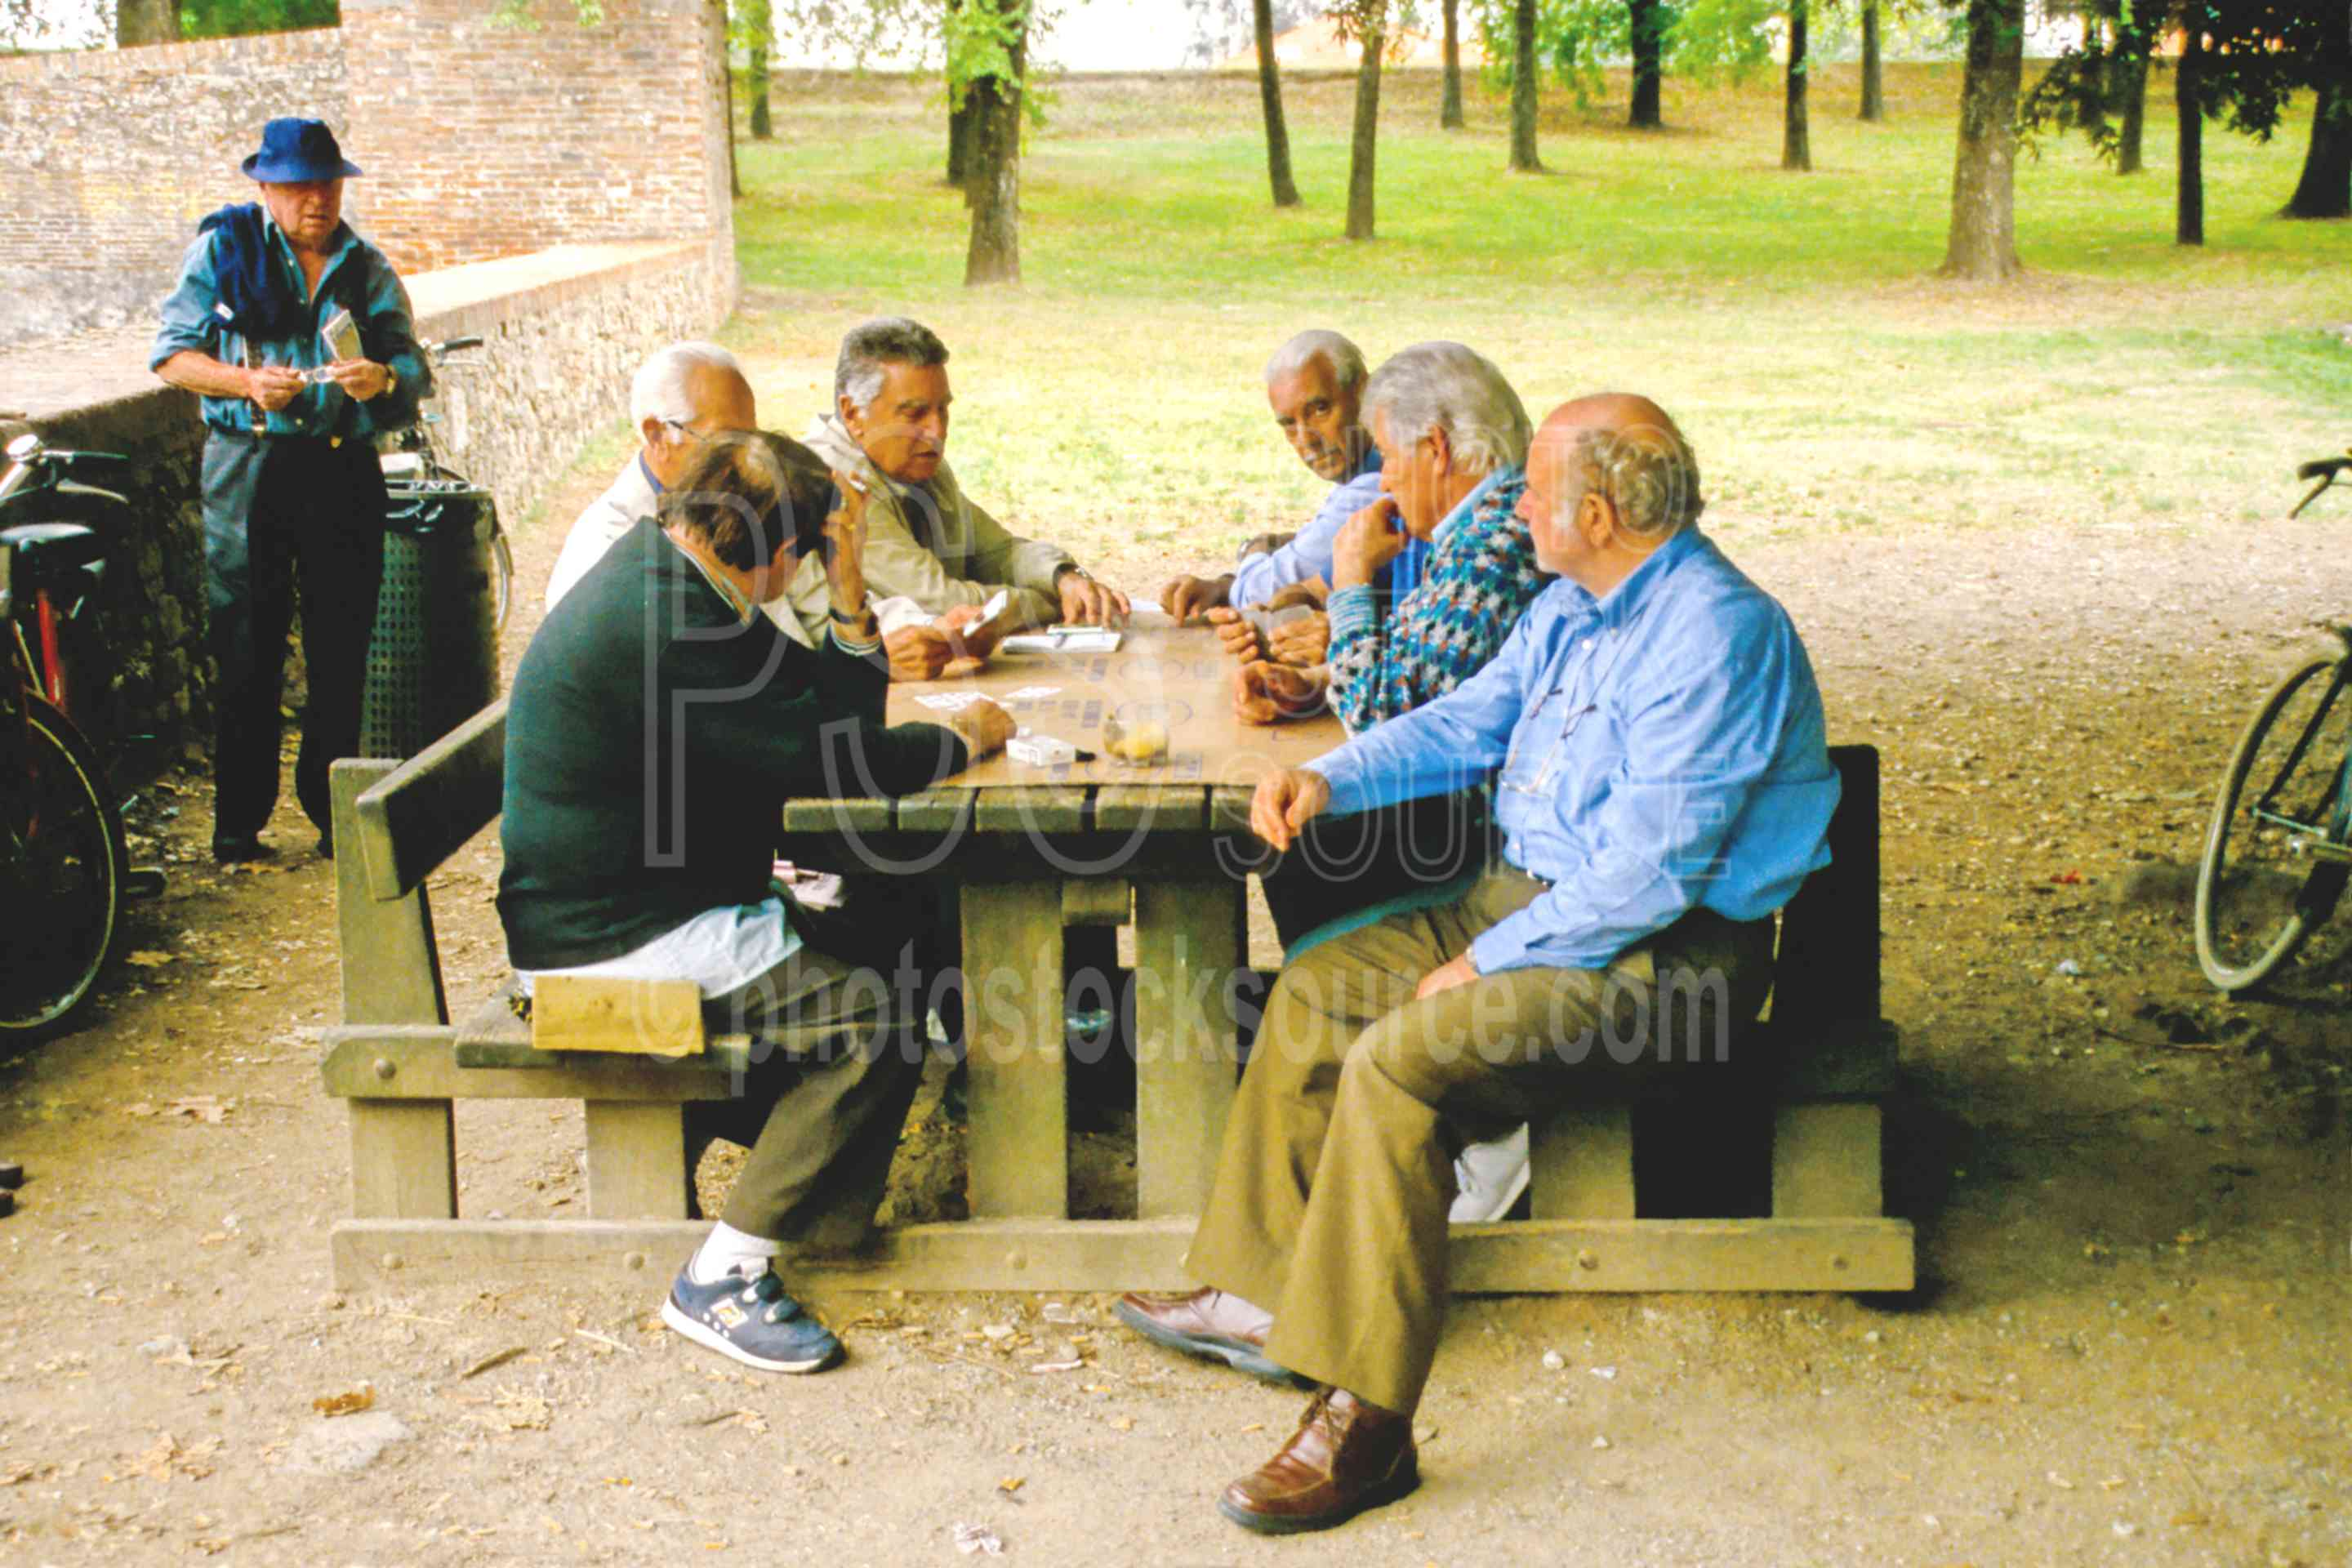 Playing Cards in the Park,cards,europe,game,mens,park